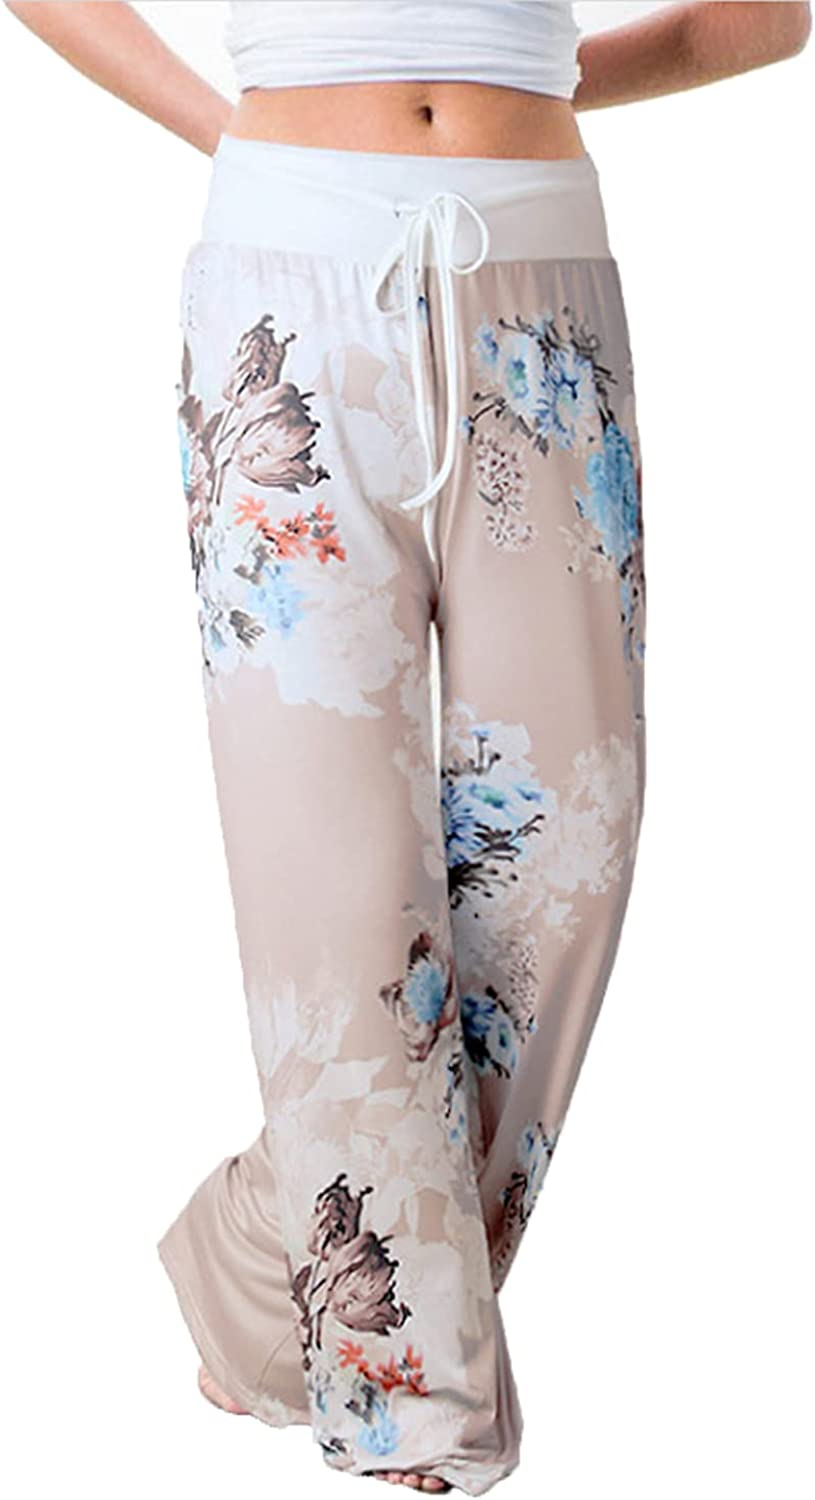 Women's Printed Wide-Leg Pants Comfy Stretch Floral Print Drawstring Lounge Trousers Casual Stretchy Casualpants (XX-Large,Gray 12)